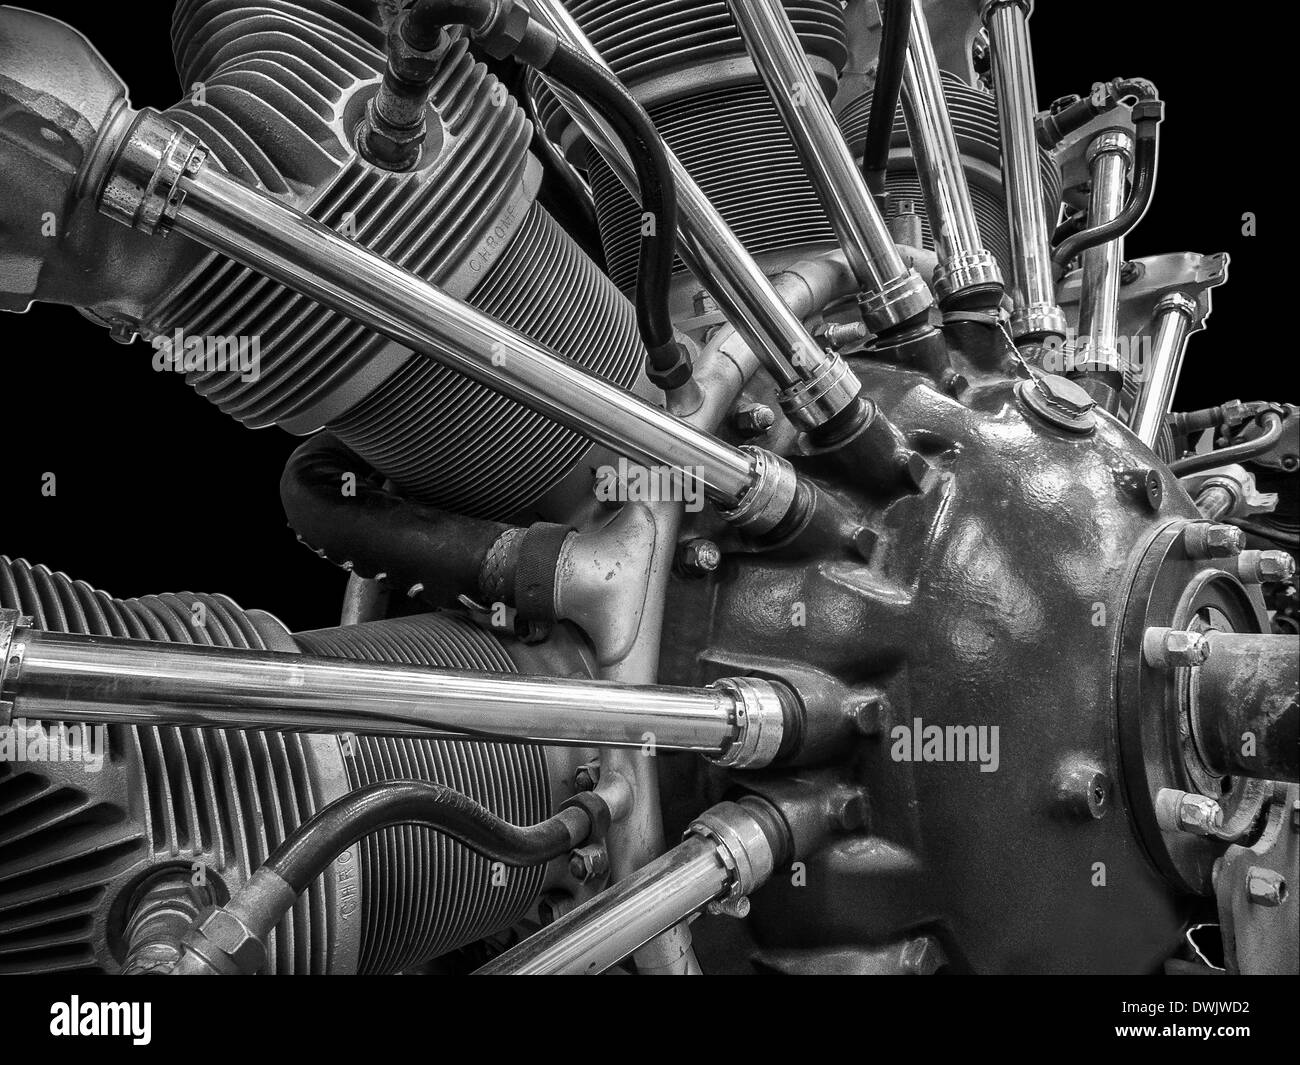 An editorial style black And white image of a1900's radial aircraft engine - Stock Image